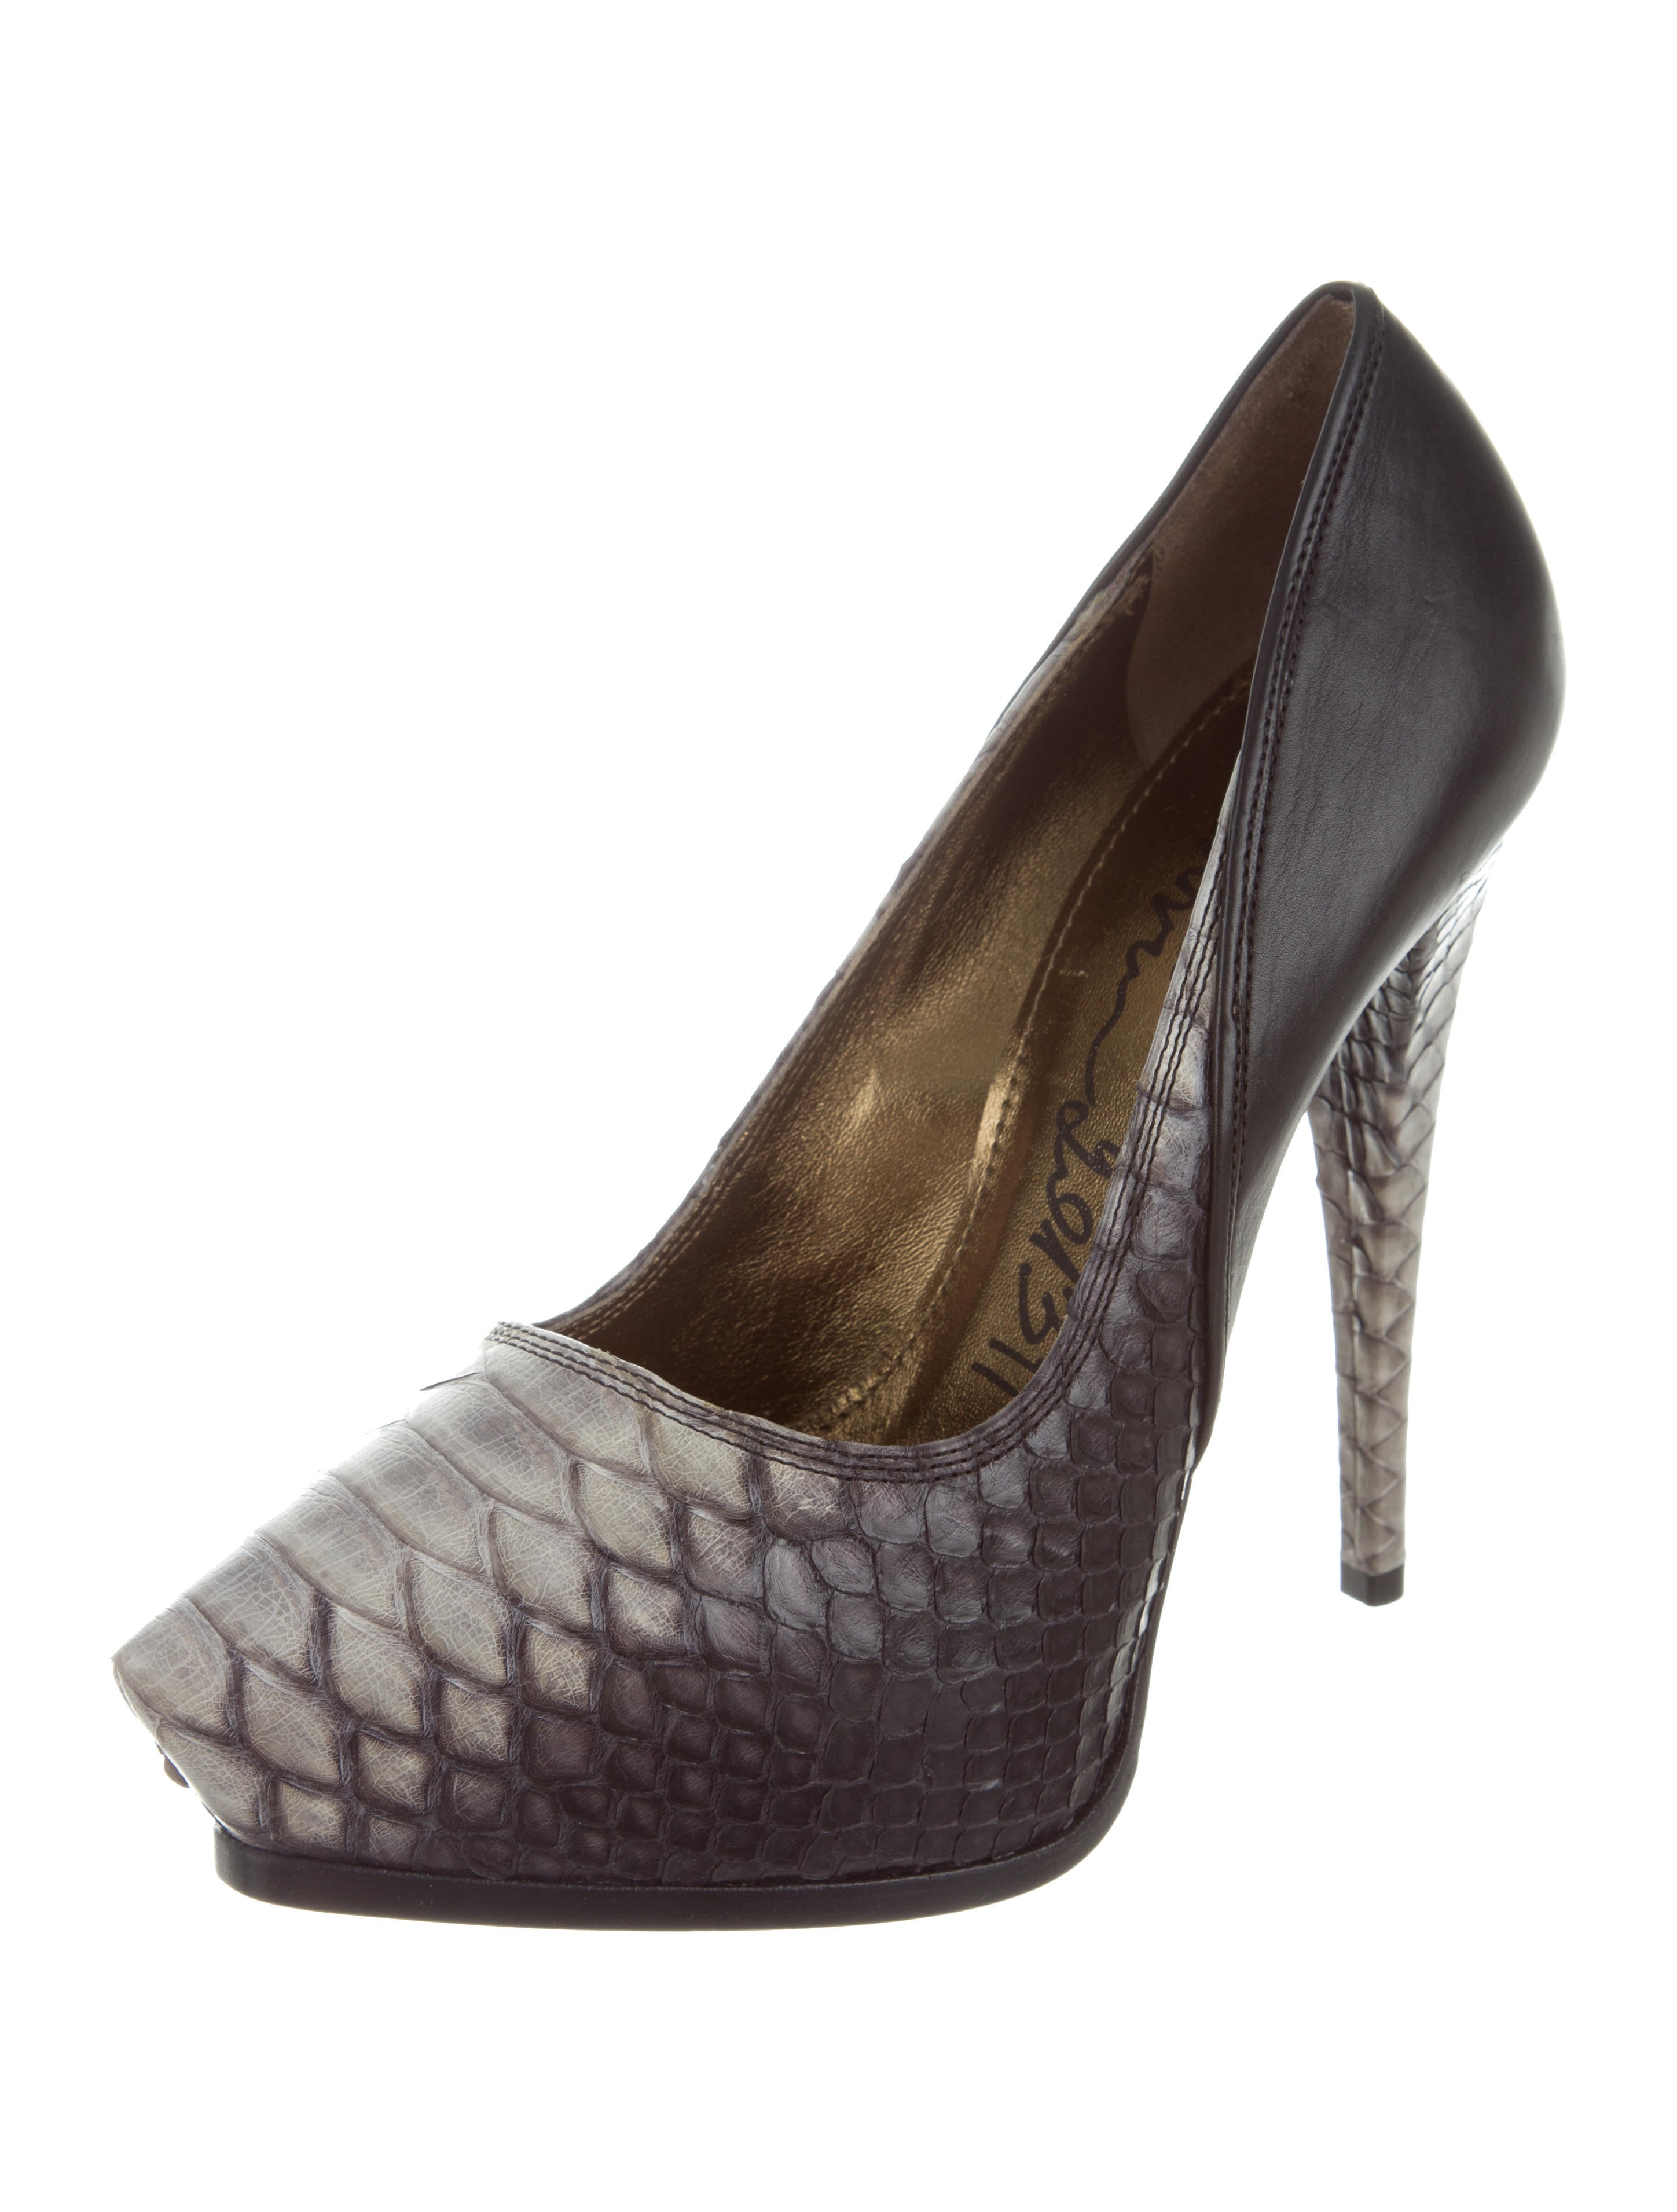 Lanvin Python Pointed-Toe Pumps - Shoes - LAN61908 | The RealReal